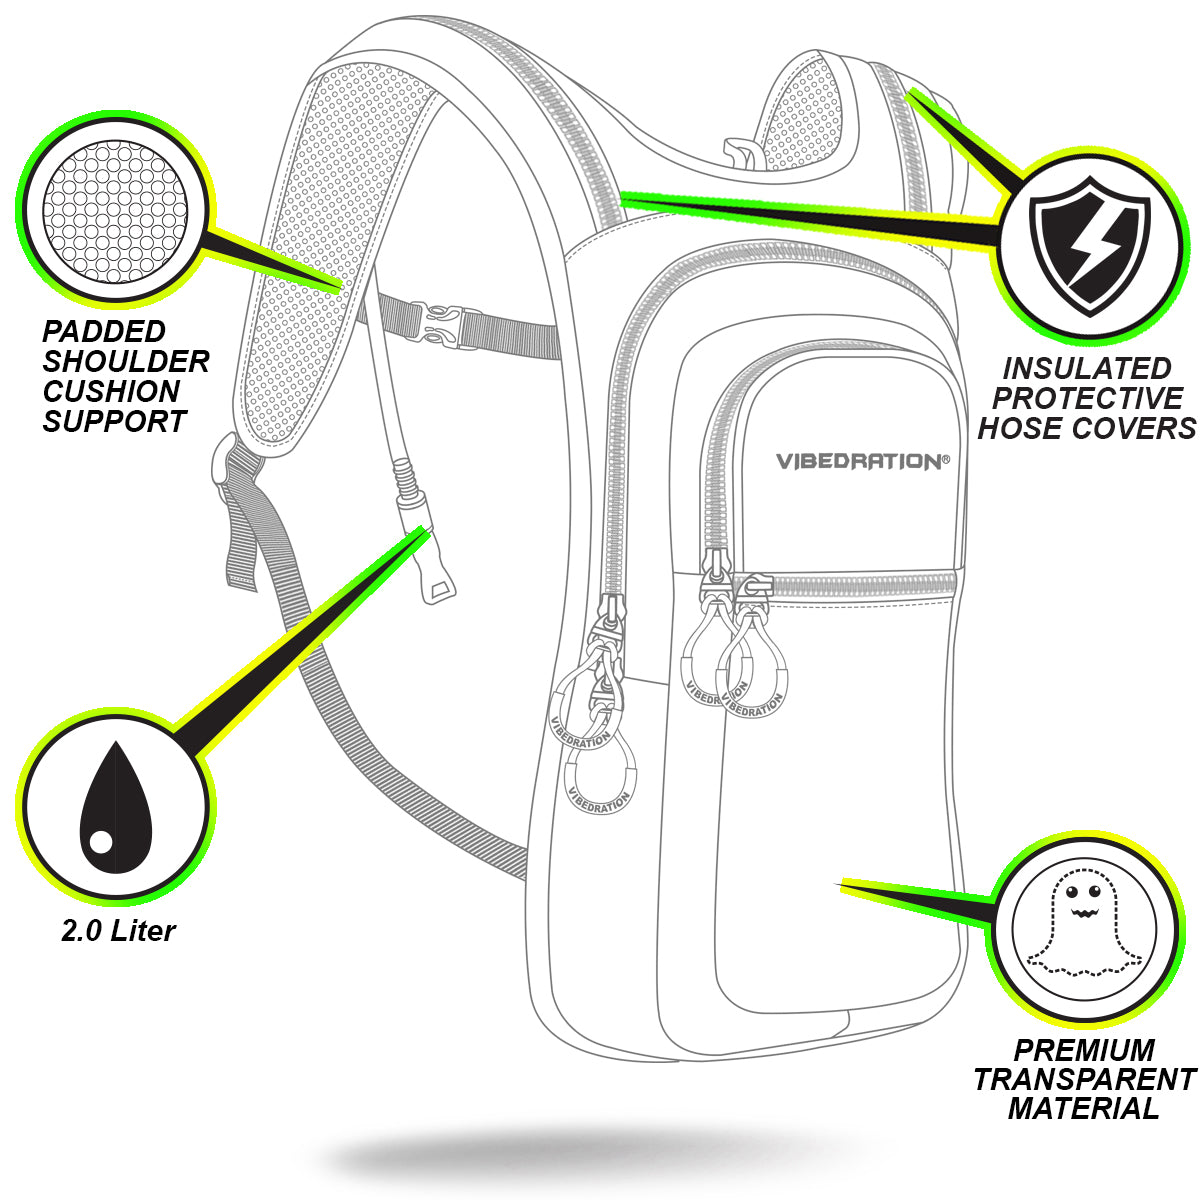 Insulated proctive Hose Cover product description of VIP 2.0L Hydration Pack